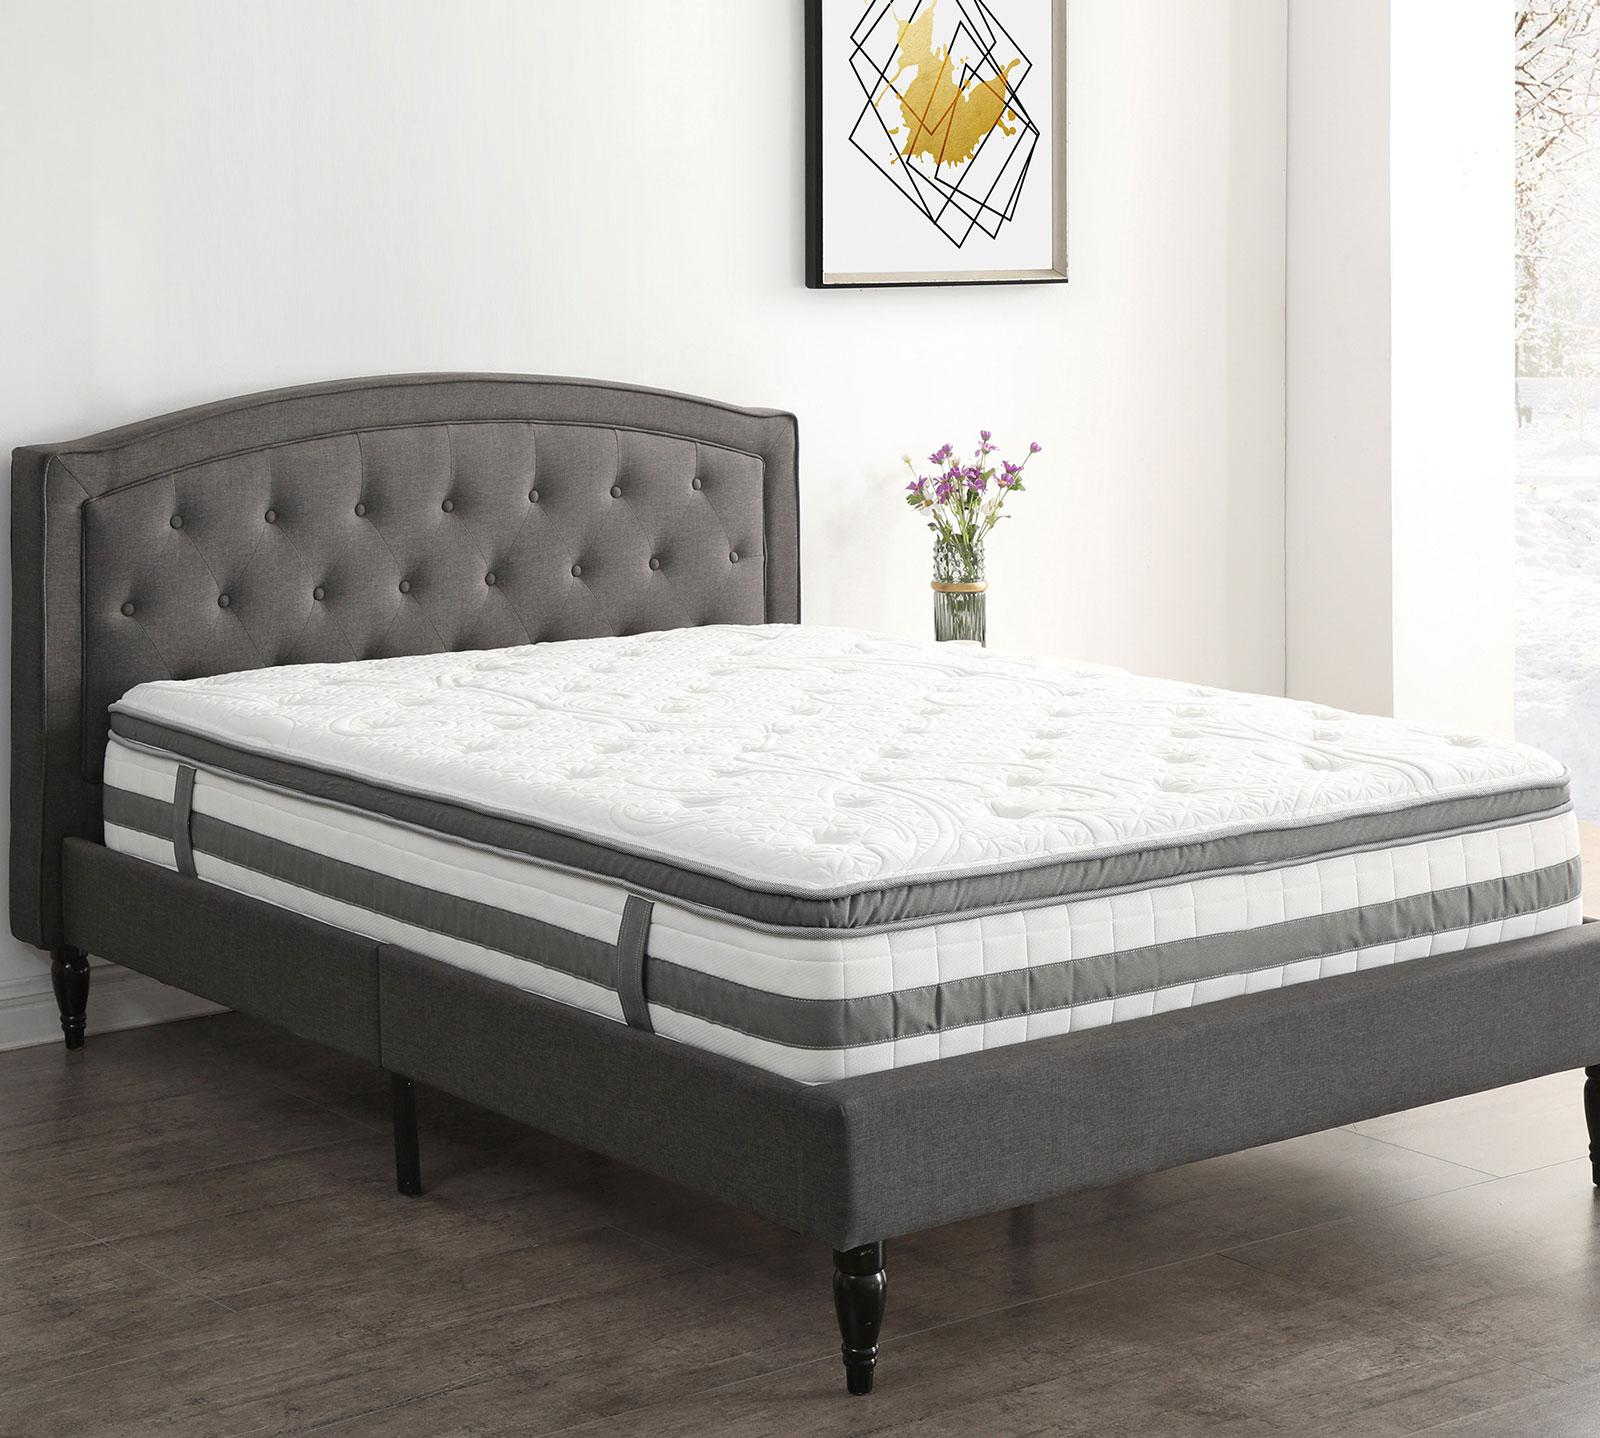 Places that sell mattresses near me postureloft 105inch for Places that sell beds